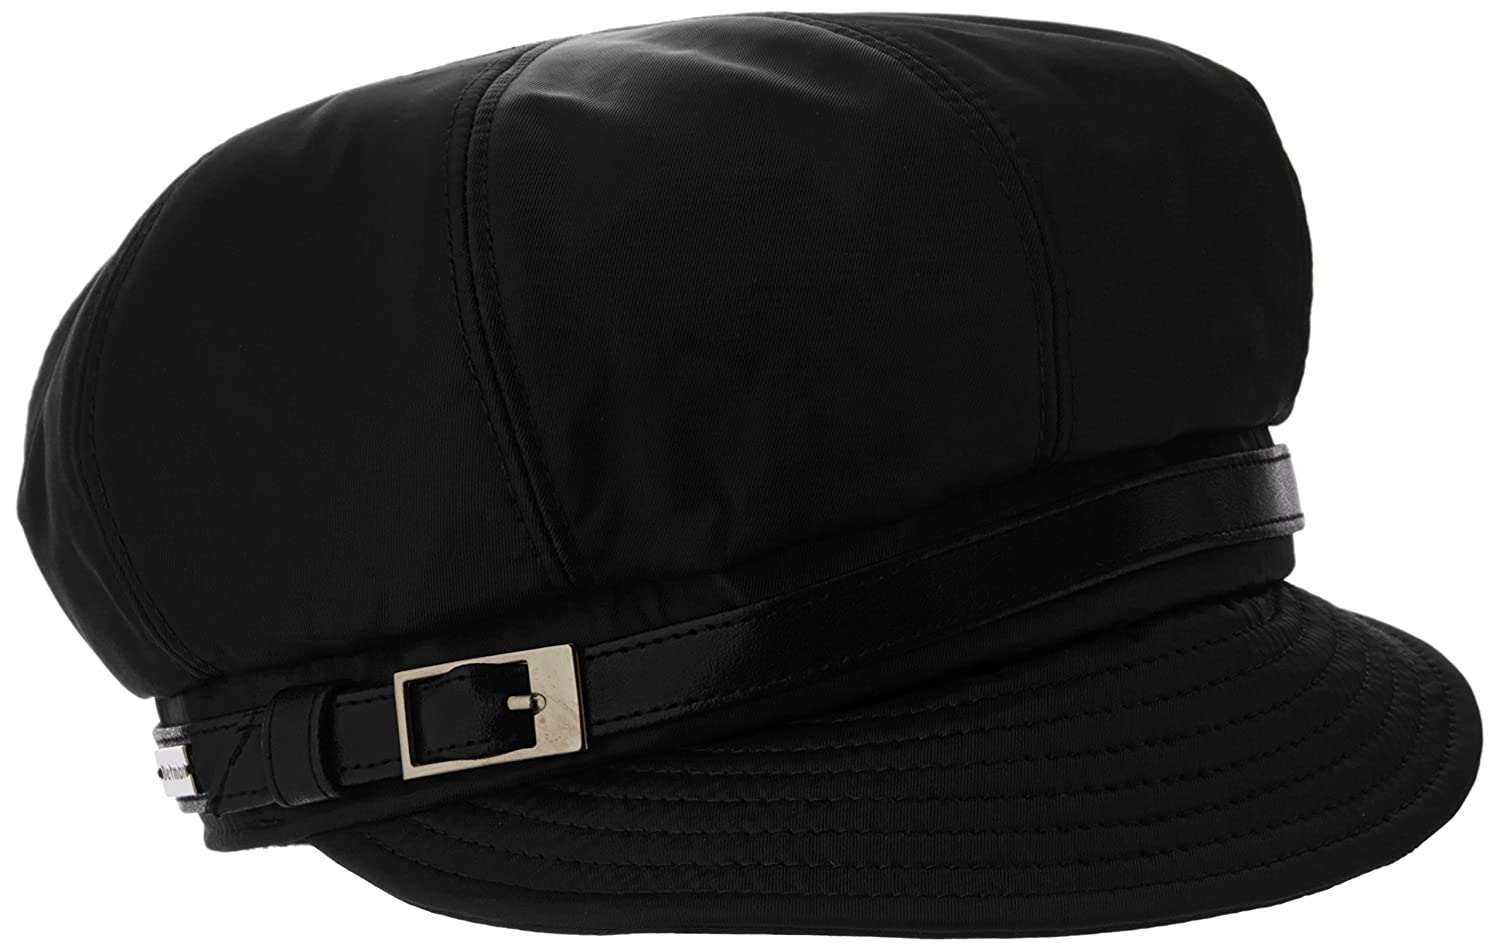 1e9d4a443f5 Betmar Women Fern Cap Black One Size Fits Most at Amazon Men s Clothing  store  Newsboy Caps